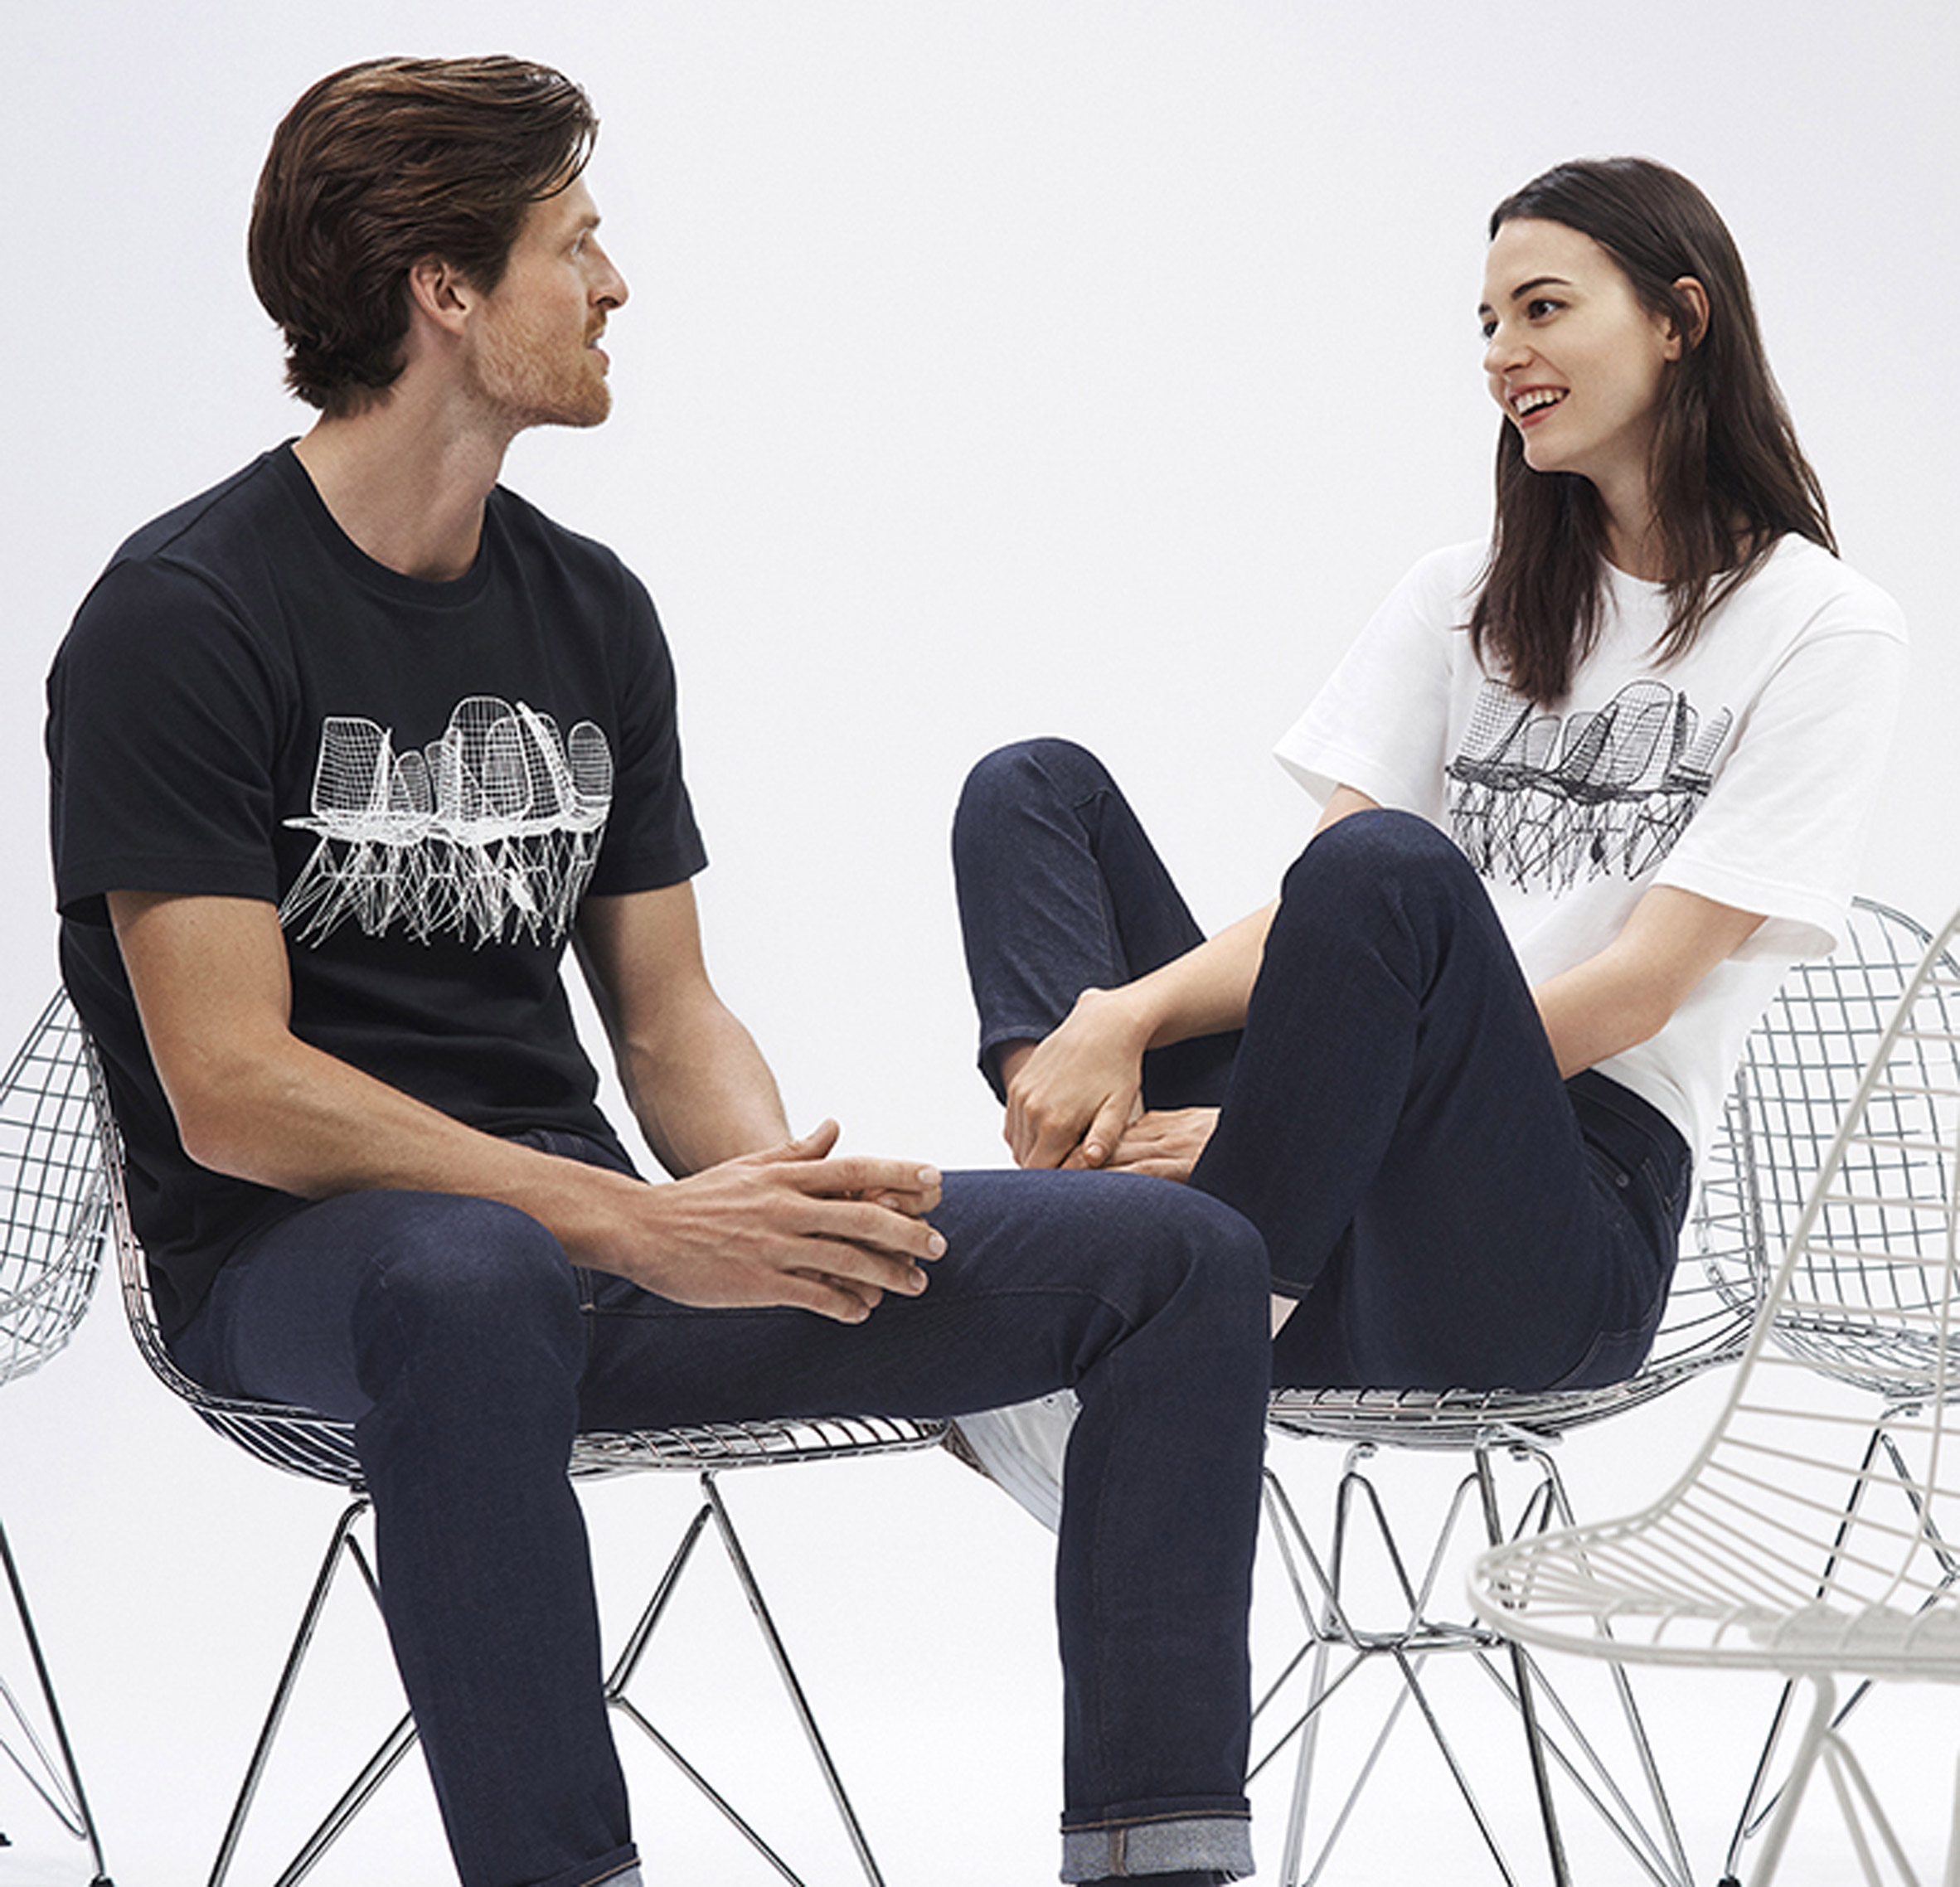 Uniqlo launches collection celebrating the careers of Ray and Charles Eames